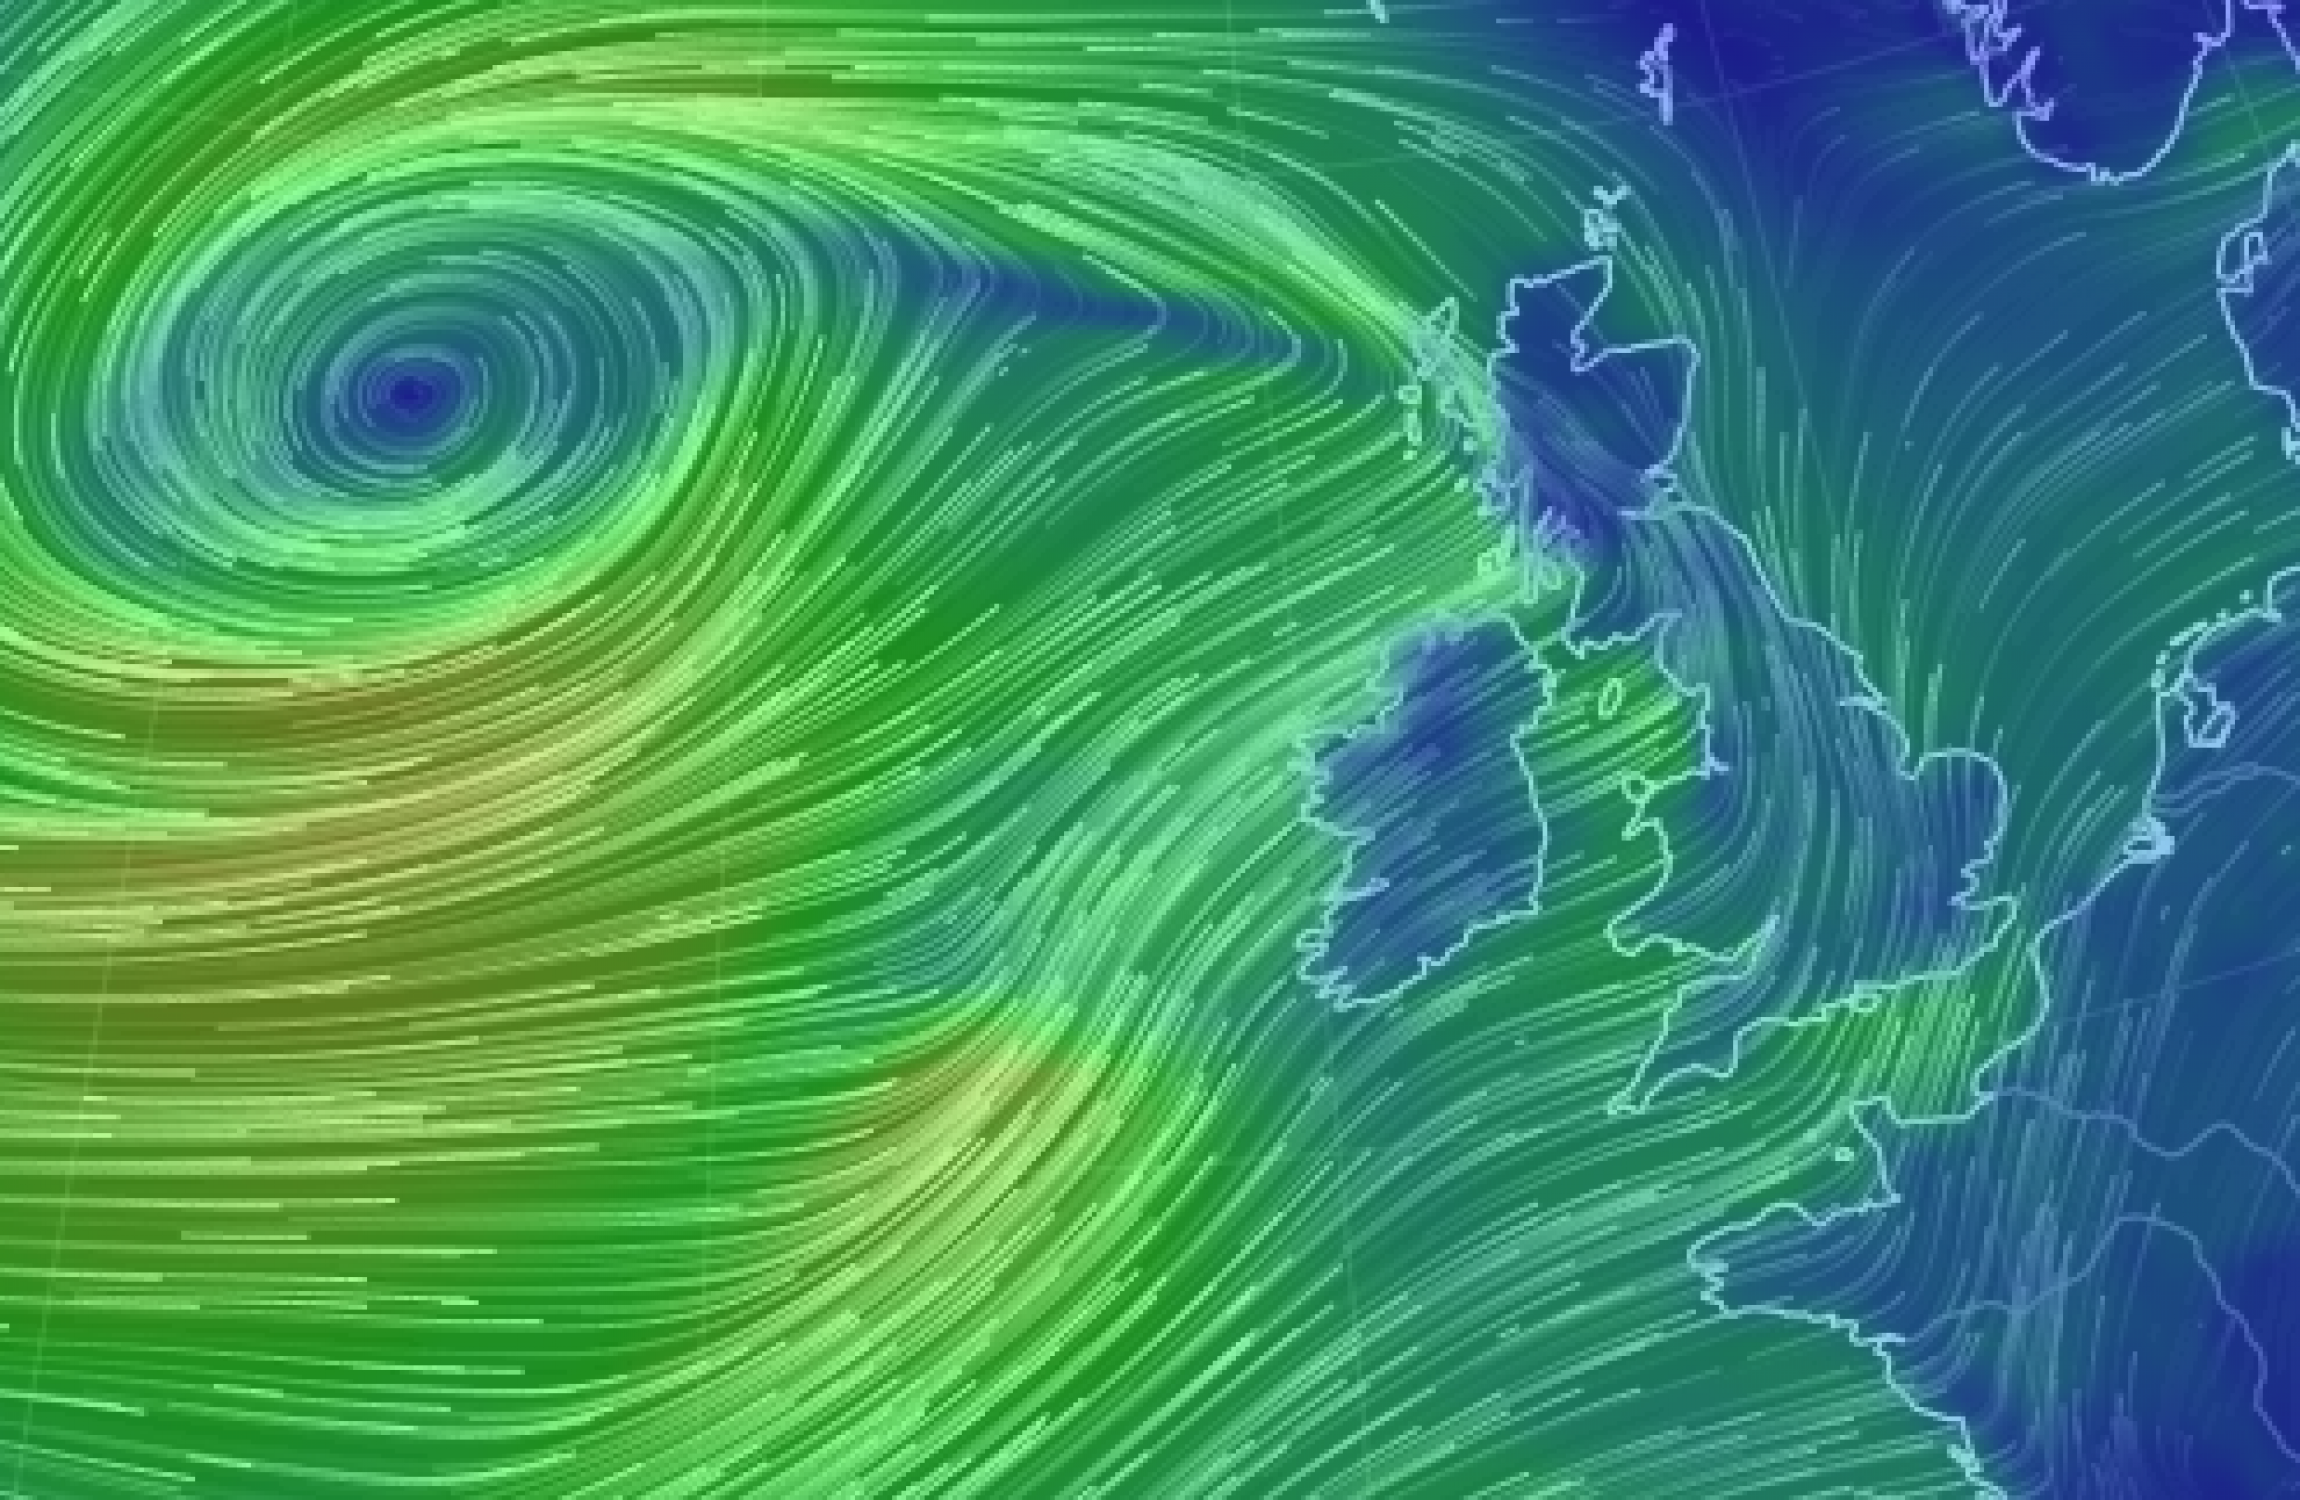 Storm Eleanor clears, but remaining unsettled